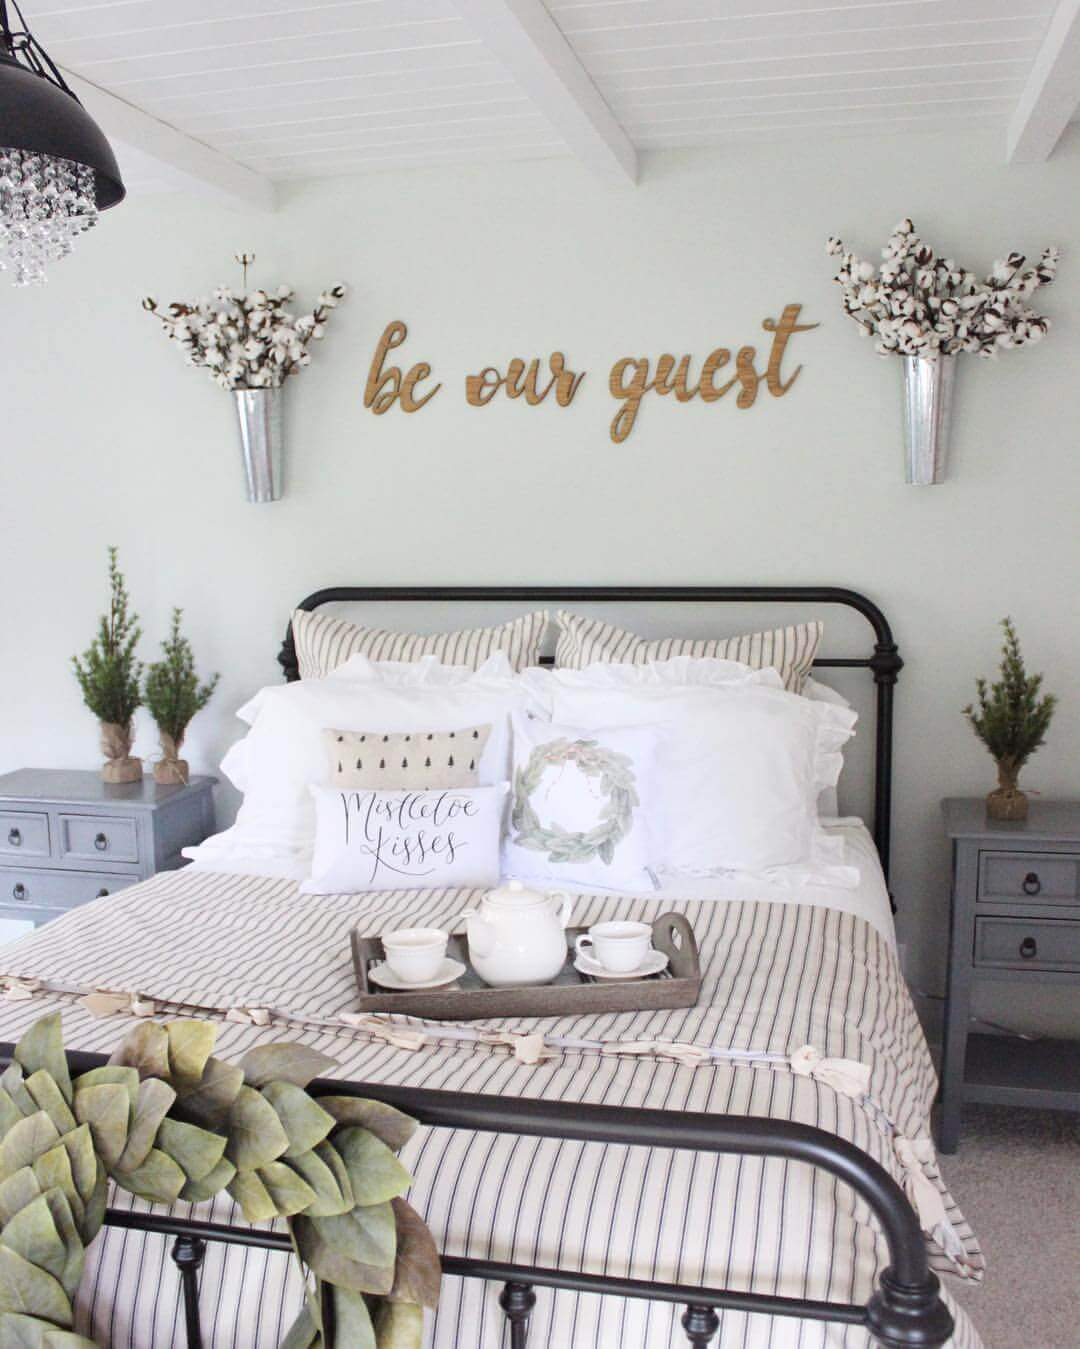 21 Enchanting Farmhouse Bedroom Decor Ideas For 2021